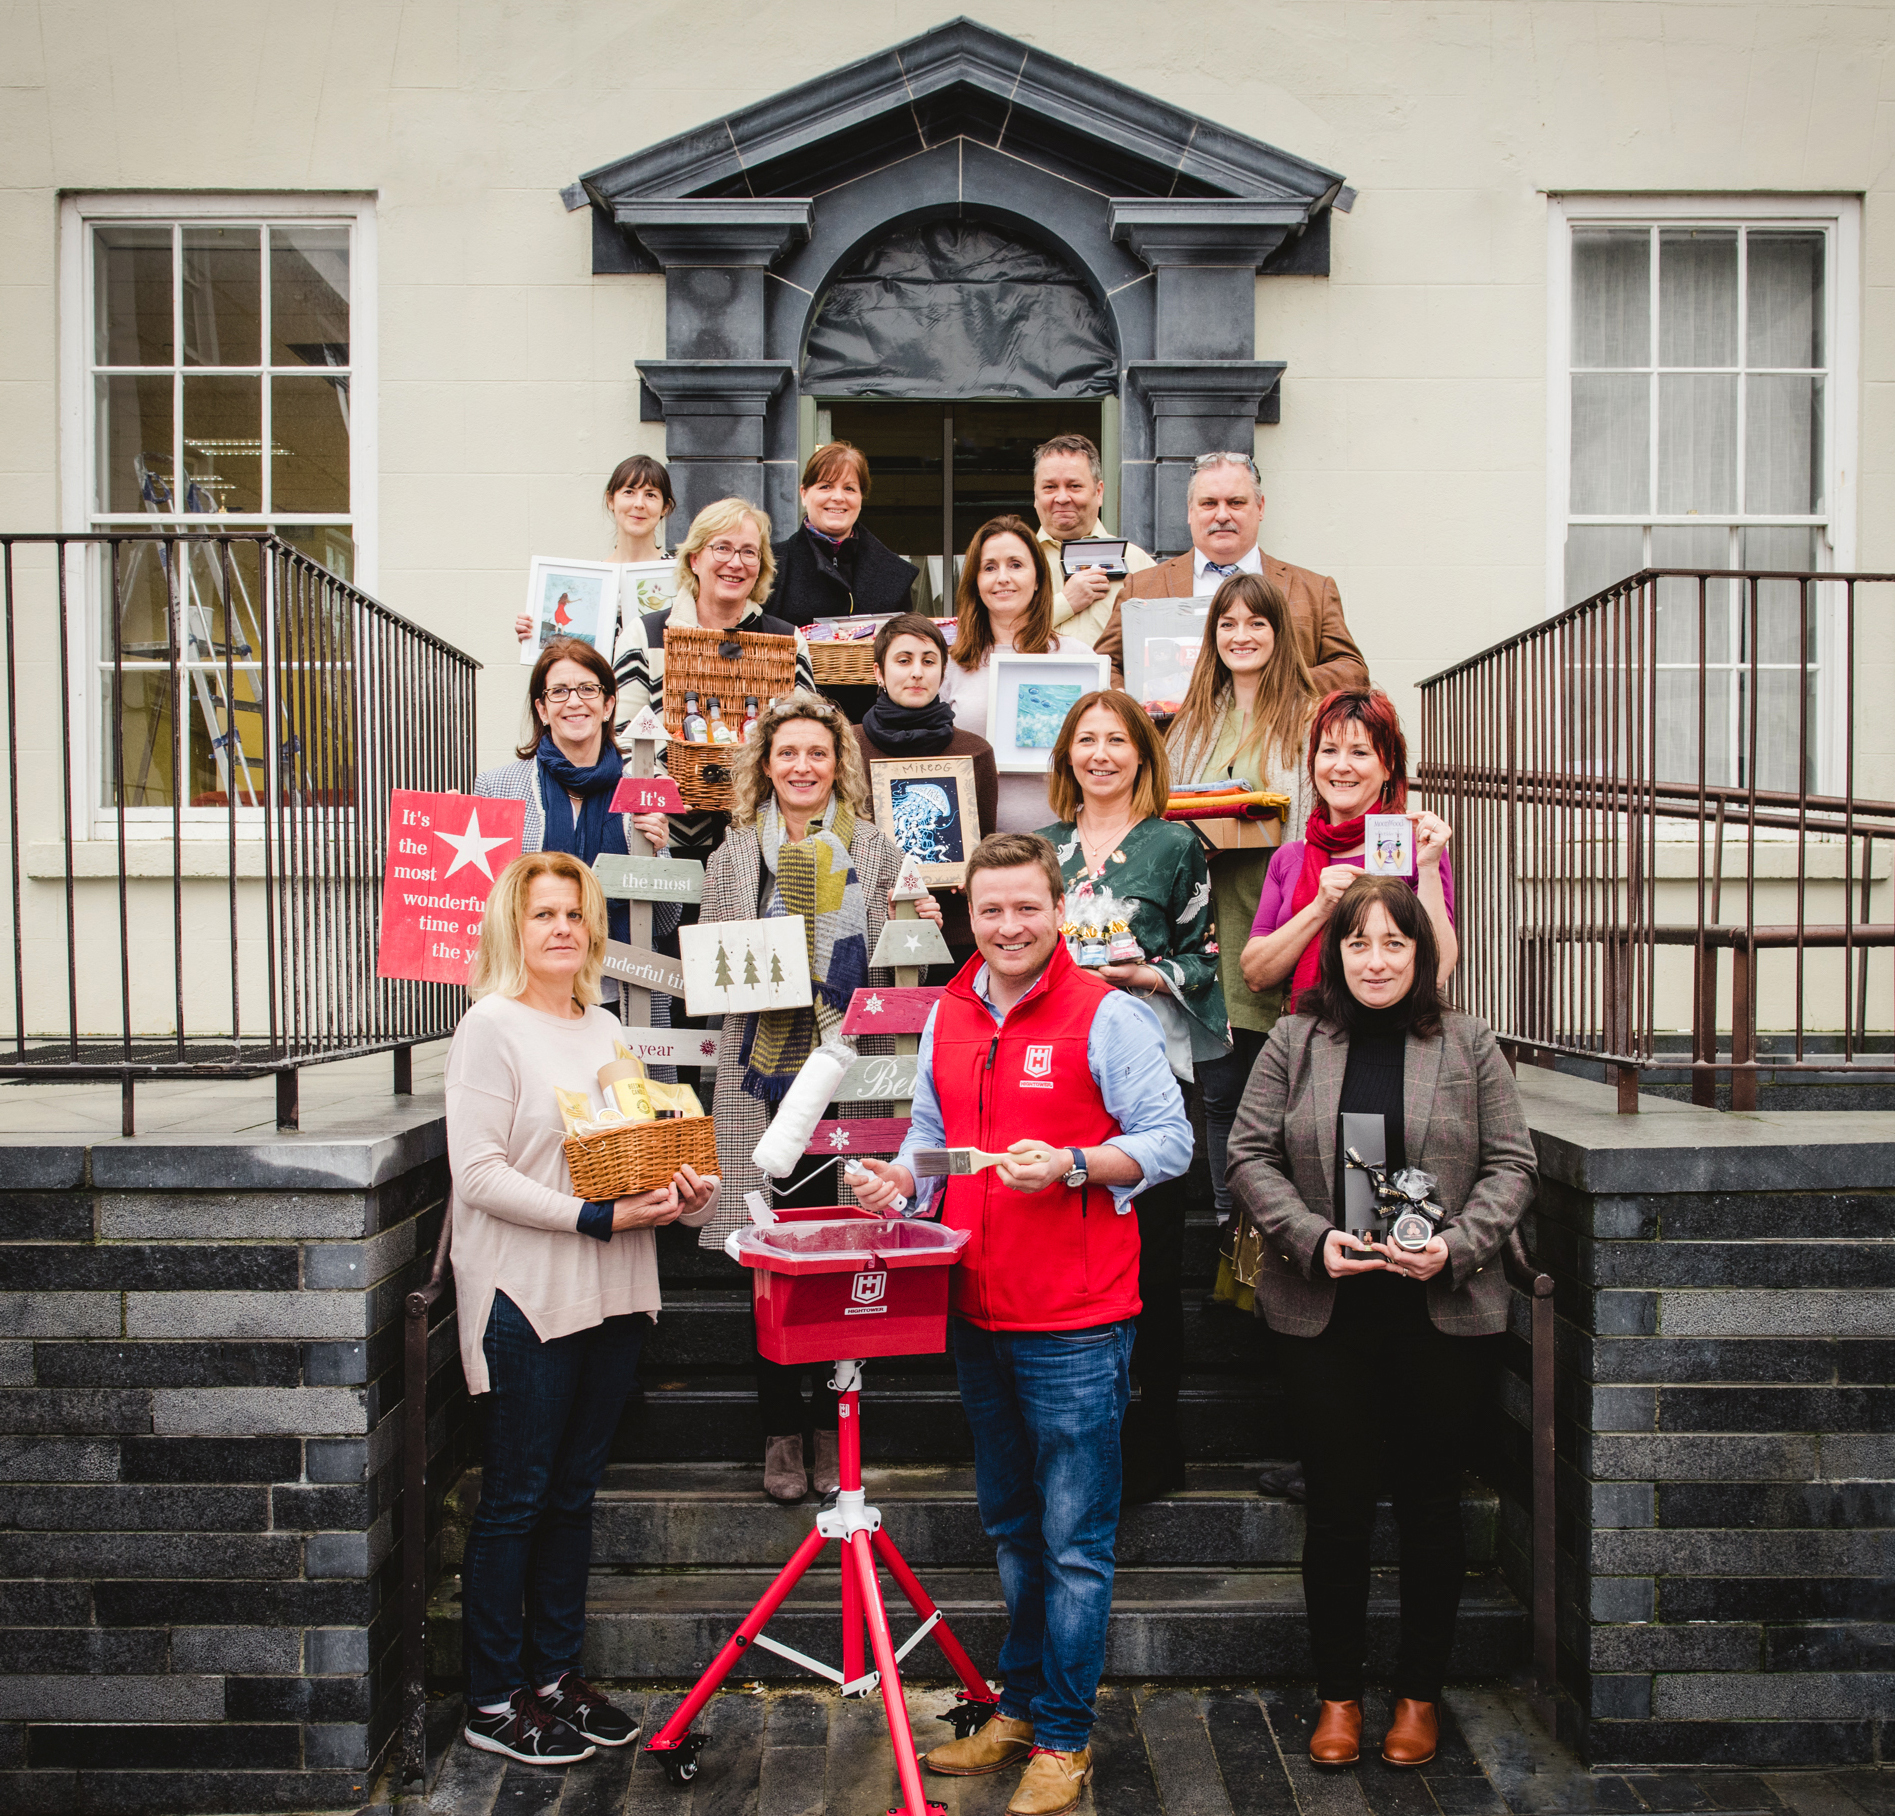 Waterford Local Enterprise Office set to host 'Local at The Deanery' Pop-Up Shop during Winterval